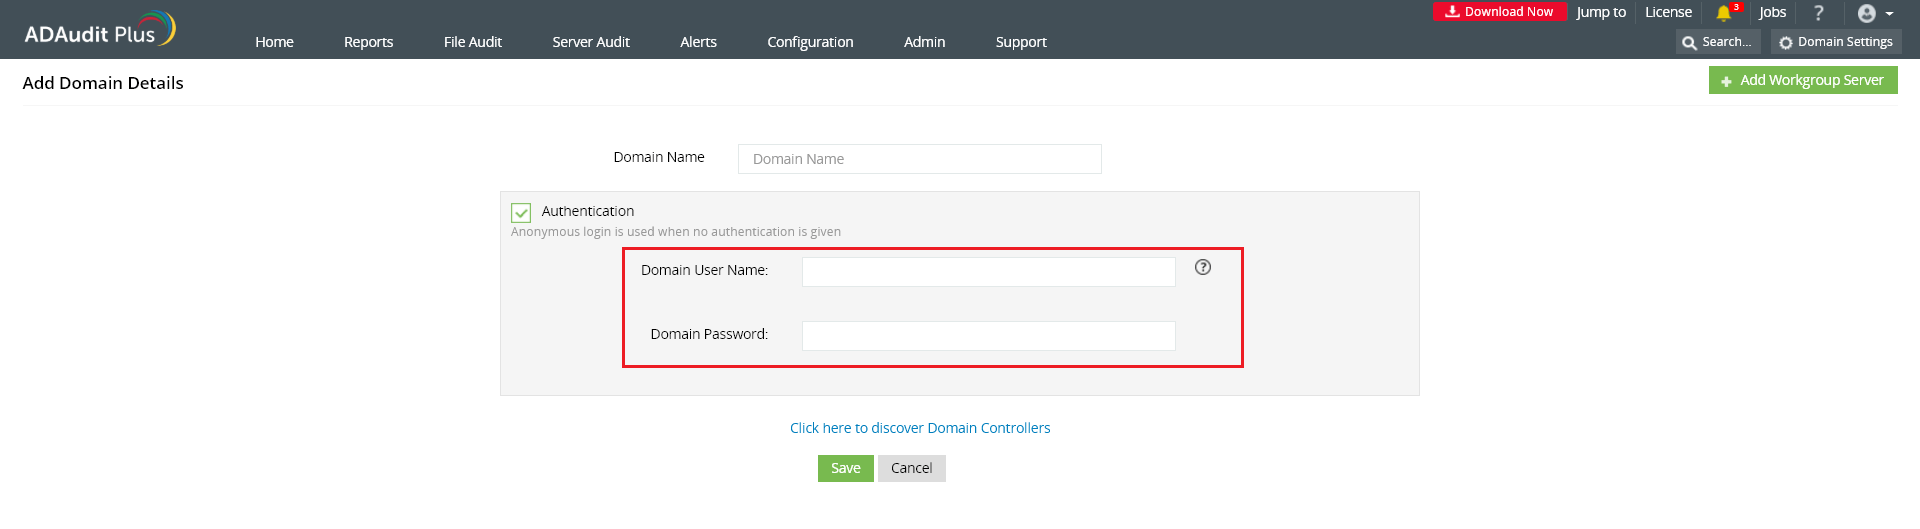 ADAudit Plus service account configuration